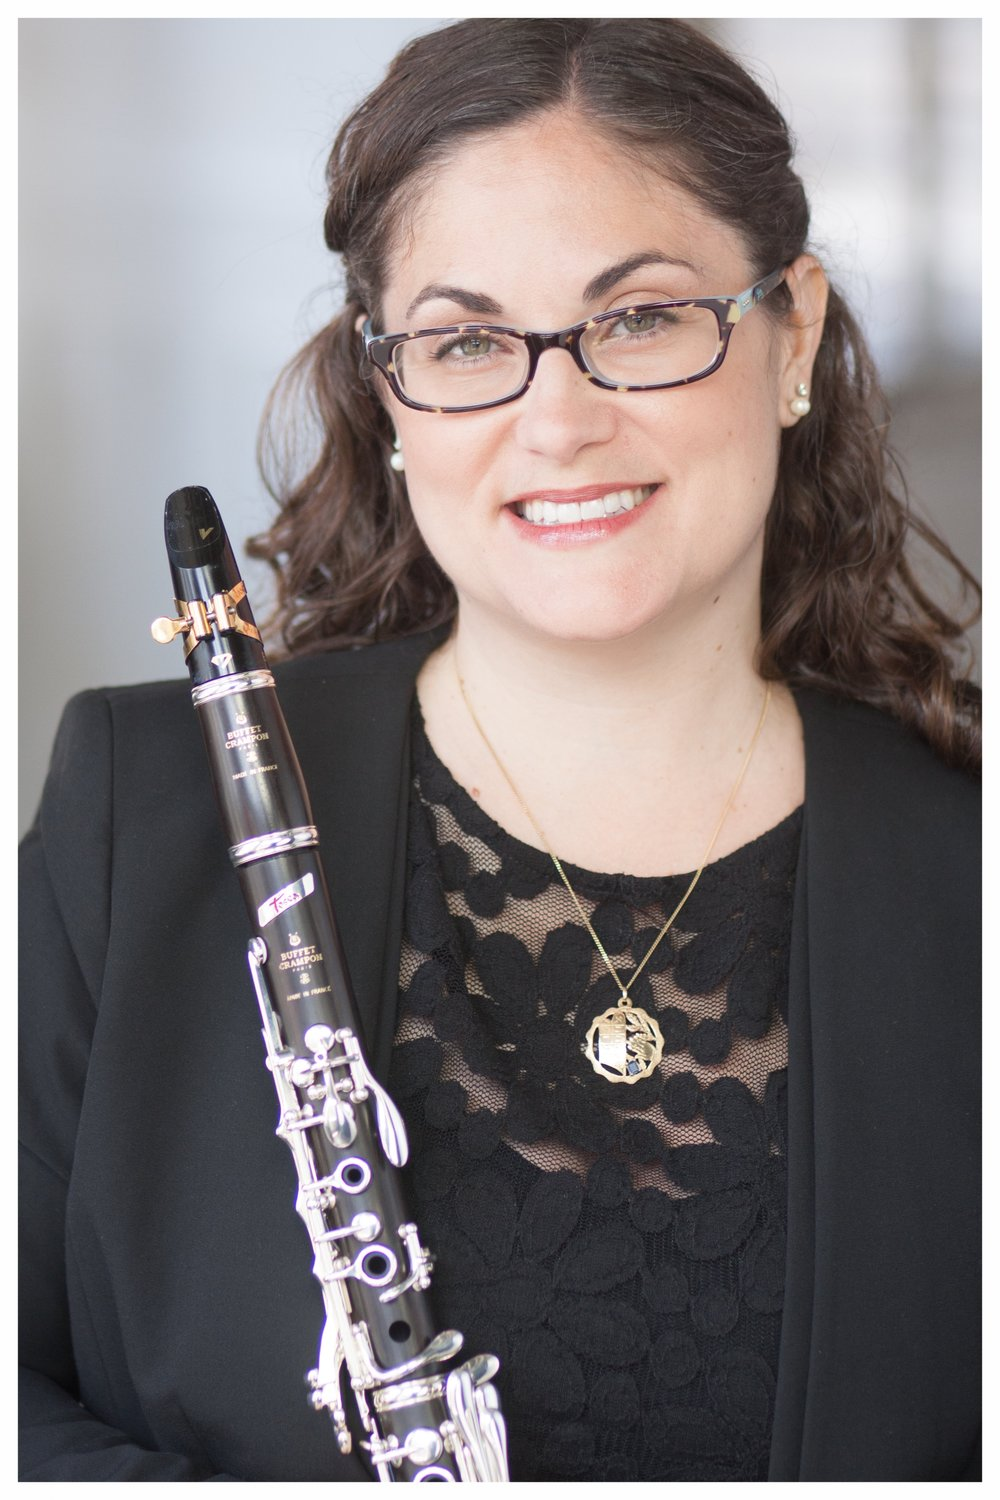 teaching - Throughout my professional career, I have developed a well-rounded curriculum for the aspiring clarinetist that is based on a sound and sensitive combination of current best practices and my own experience as a musician. By focusing on the needs of each student with regard to tone production, embouchure, breathing, posture, tonguing, rhythm, sight reading, and performance anxiety, I have been able to help them dramatically improve their technique. I teach phrasing and musical expression through my combined knowledge of music theory, and music history. The concept of sound and the development of musical style is taught through frequent concert attendance and listening to recordings. In addition to attending the concerts of their fellow clarinetists, my students are required to attend no less than five concerts per semester.Like any other aspect of musical development the growing musician must practice performing. My students profit from my instruction as well as interaction with their peers as they are given the opportunity to perform in master classes and studio recitals.As my course syllabus states, I adhere to an open door policy. My students are welcome to call me, or e-mail me at anytime after 8am and before 11 pm with questions and concerns regarding their musical growth/profession.Levana is currently accepting new students of all ages and ability in the New York City and Long Island Areas. Please contact her to set up your lesson.